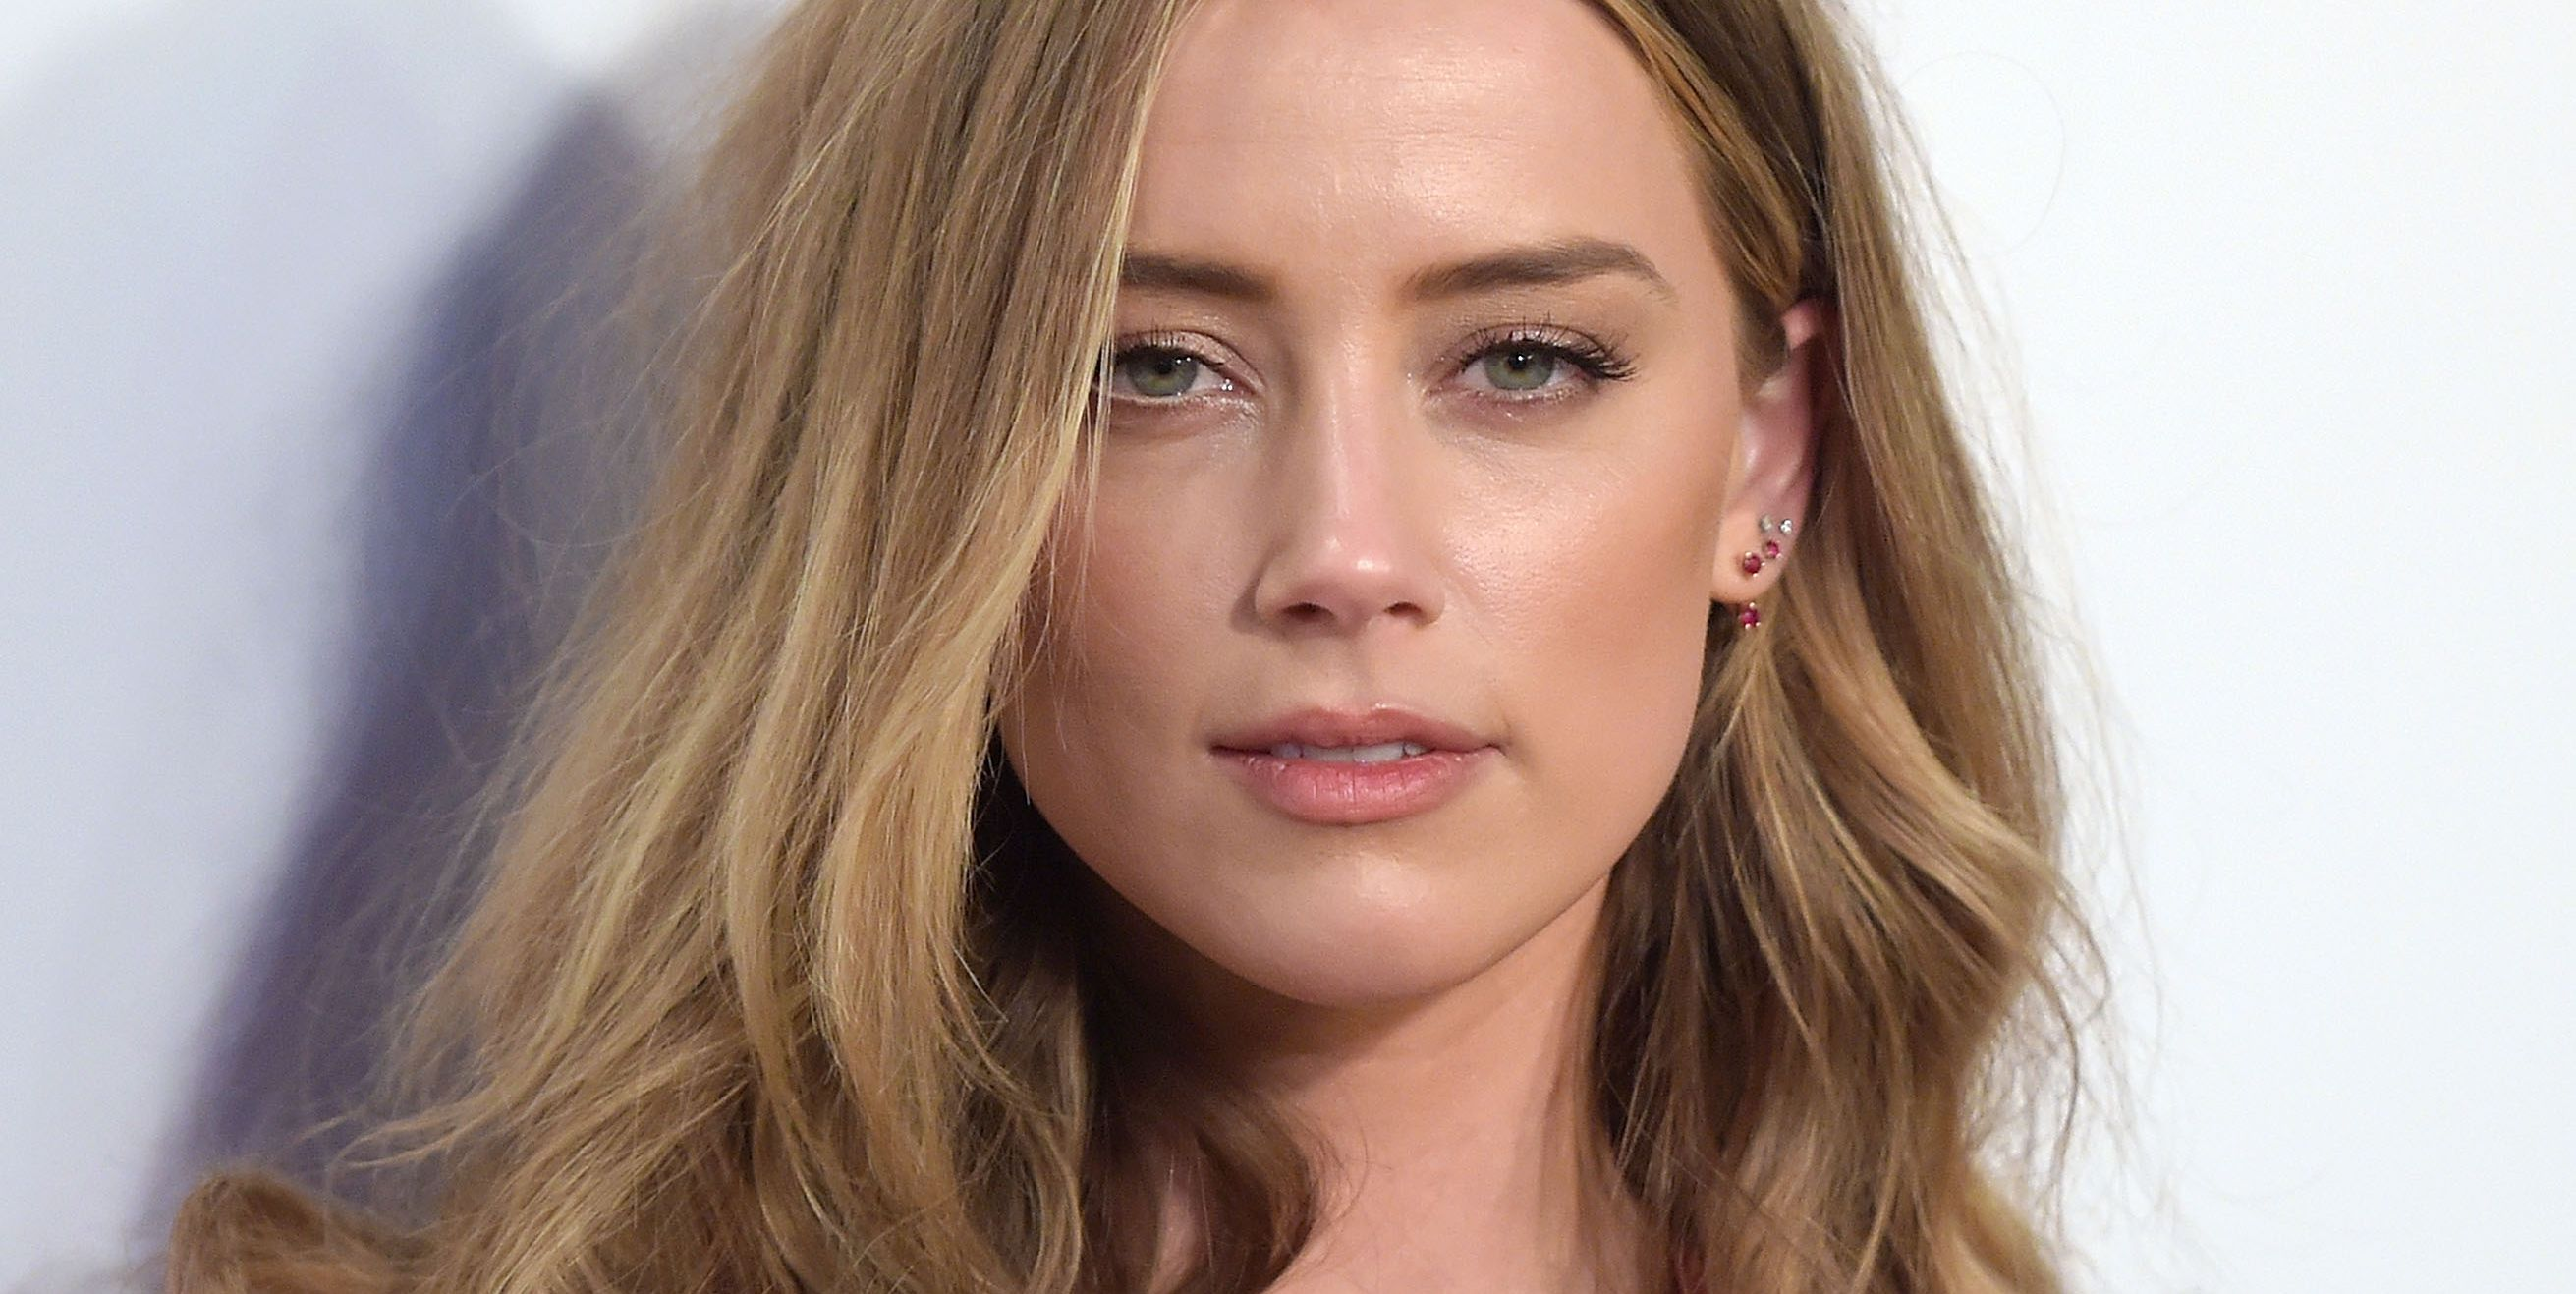 Amber Heard Leaked Nudes amber heard naked | #thefappening